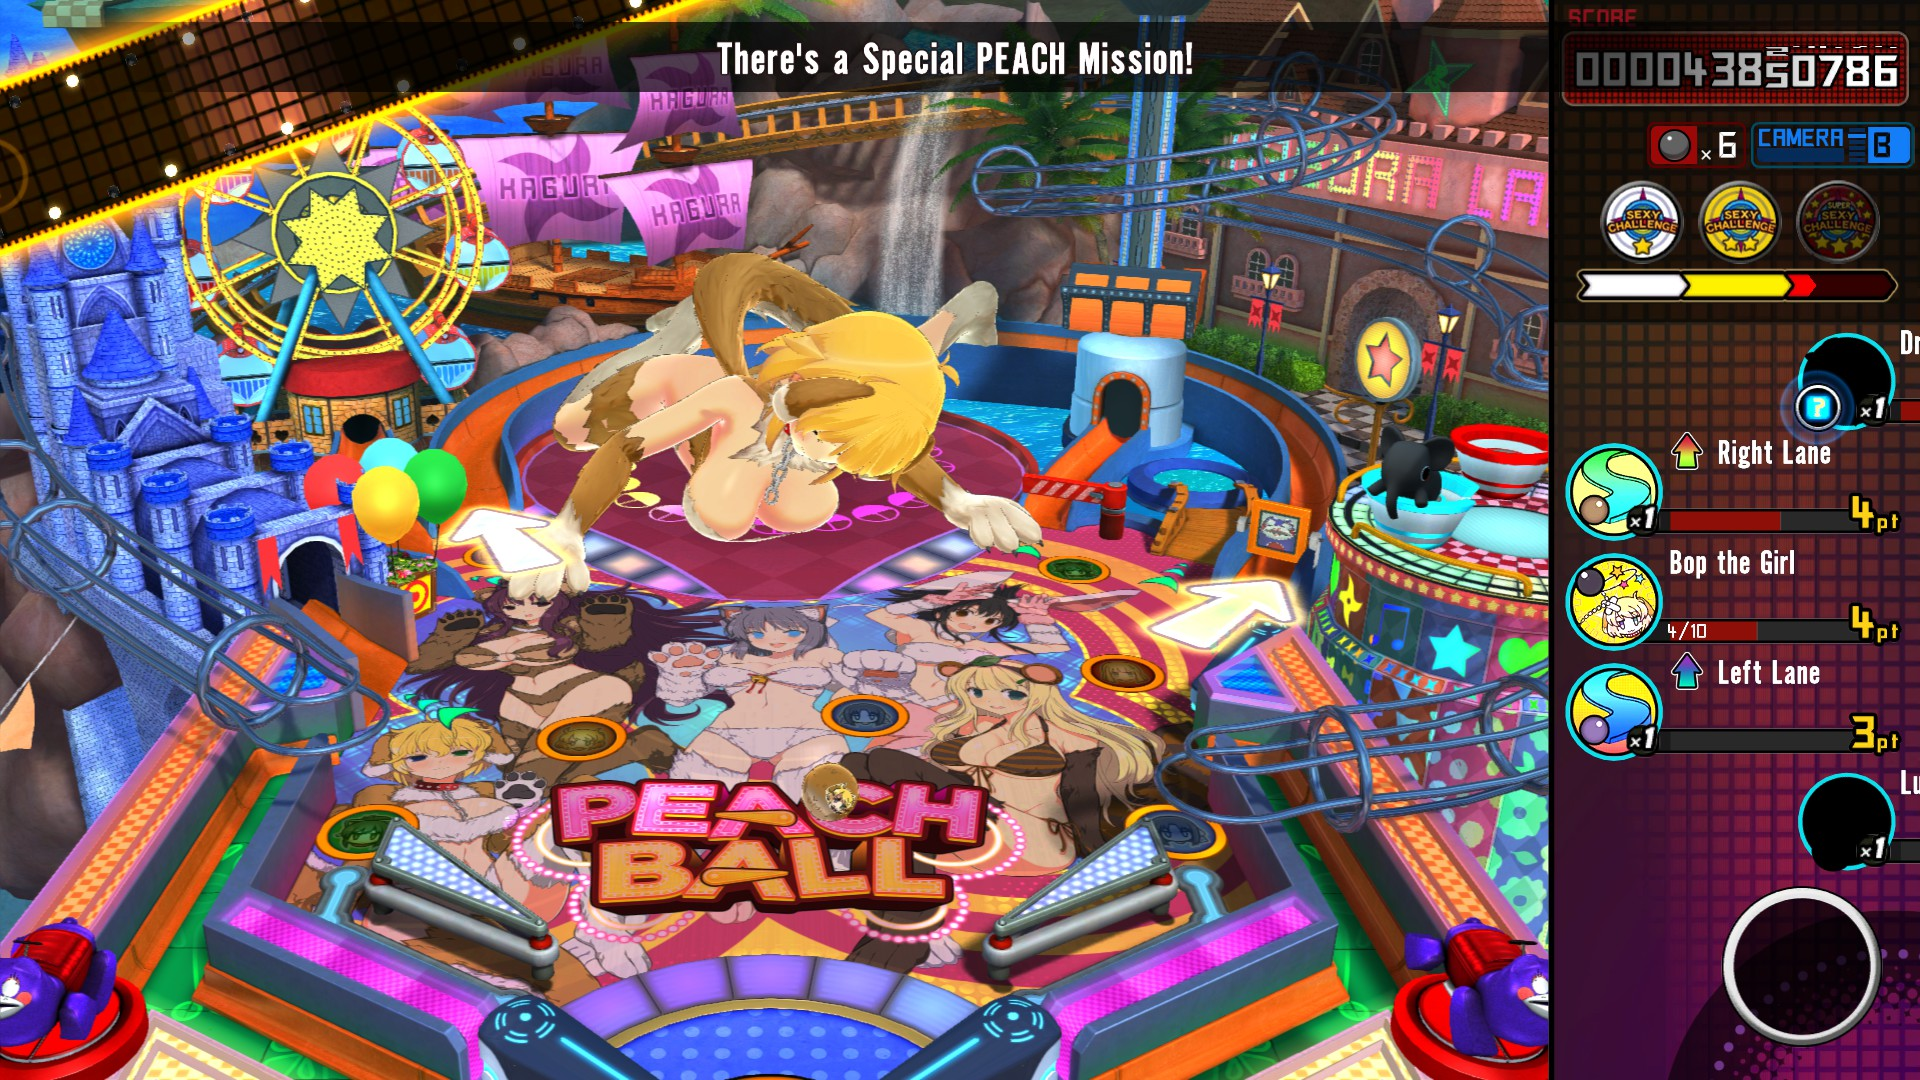 SENRAN KAGURA Peach Ball - PC_Pinball1.jpg